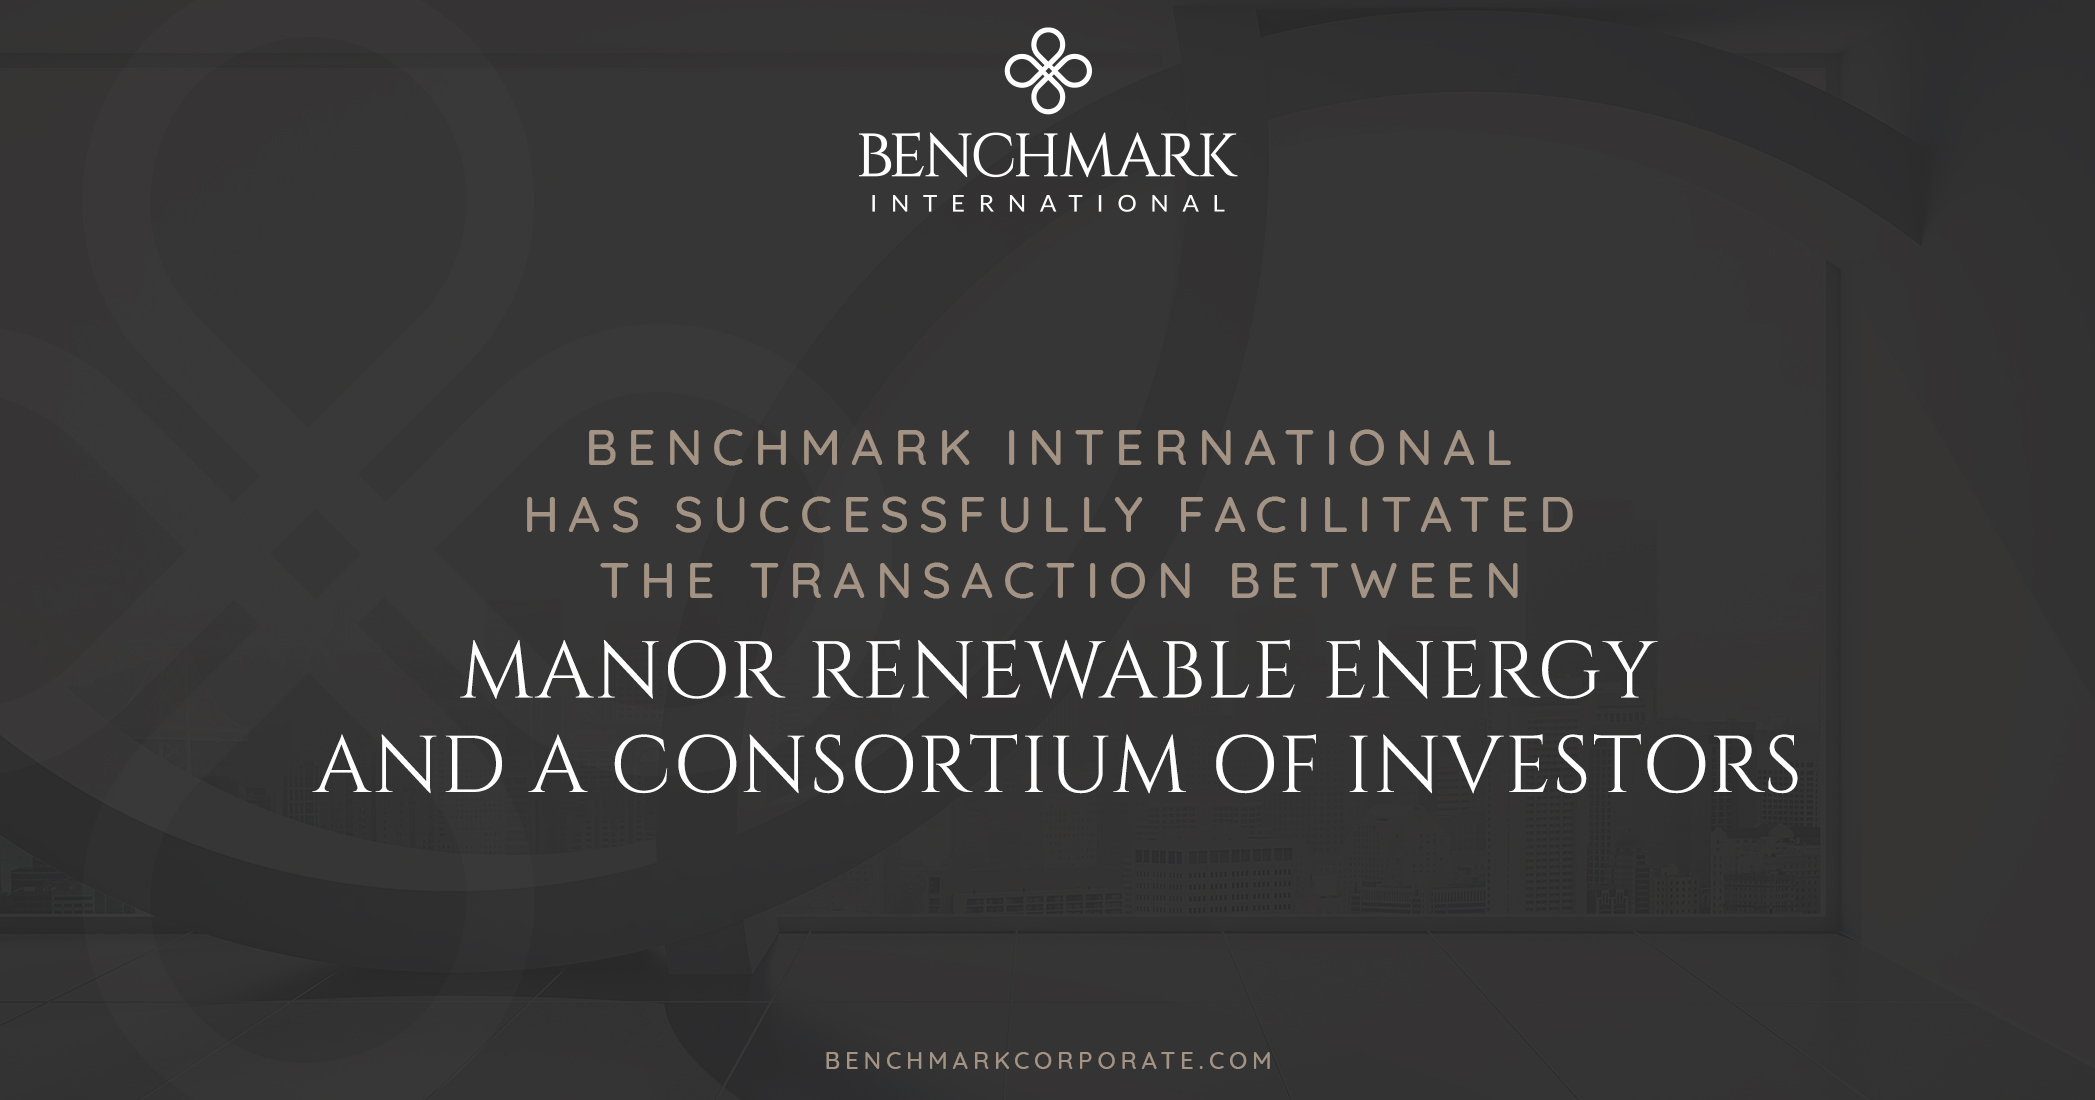 Benchmark International has Advised on the Sale of Manor Renewable Energy to a Consortium of Investors